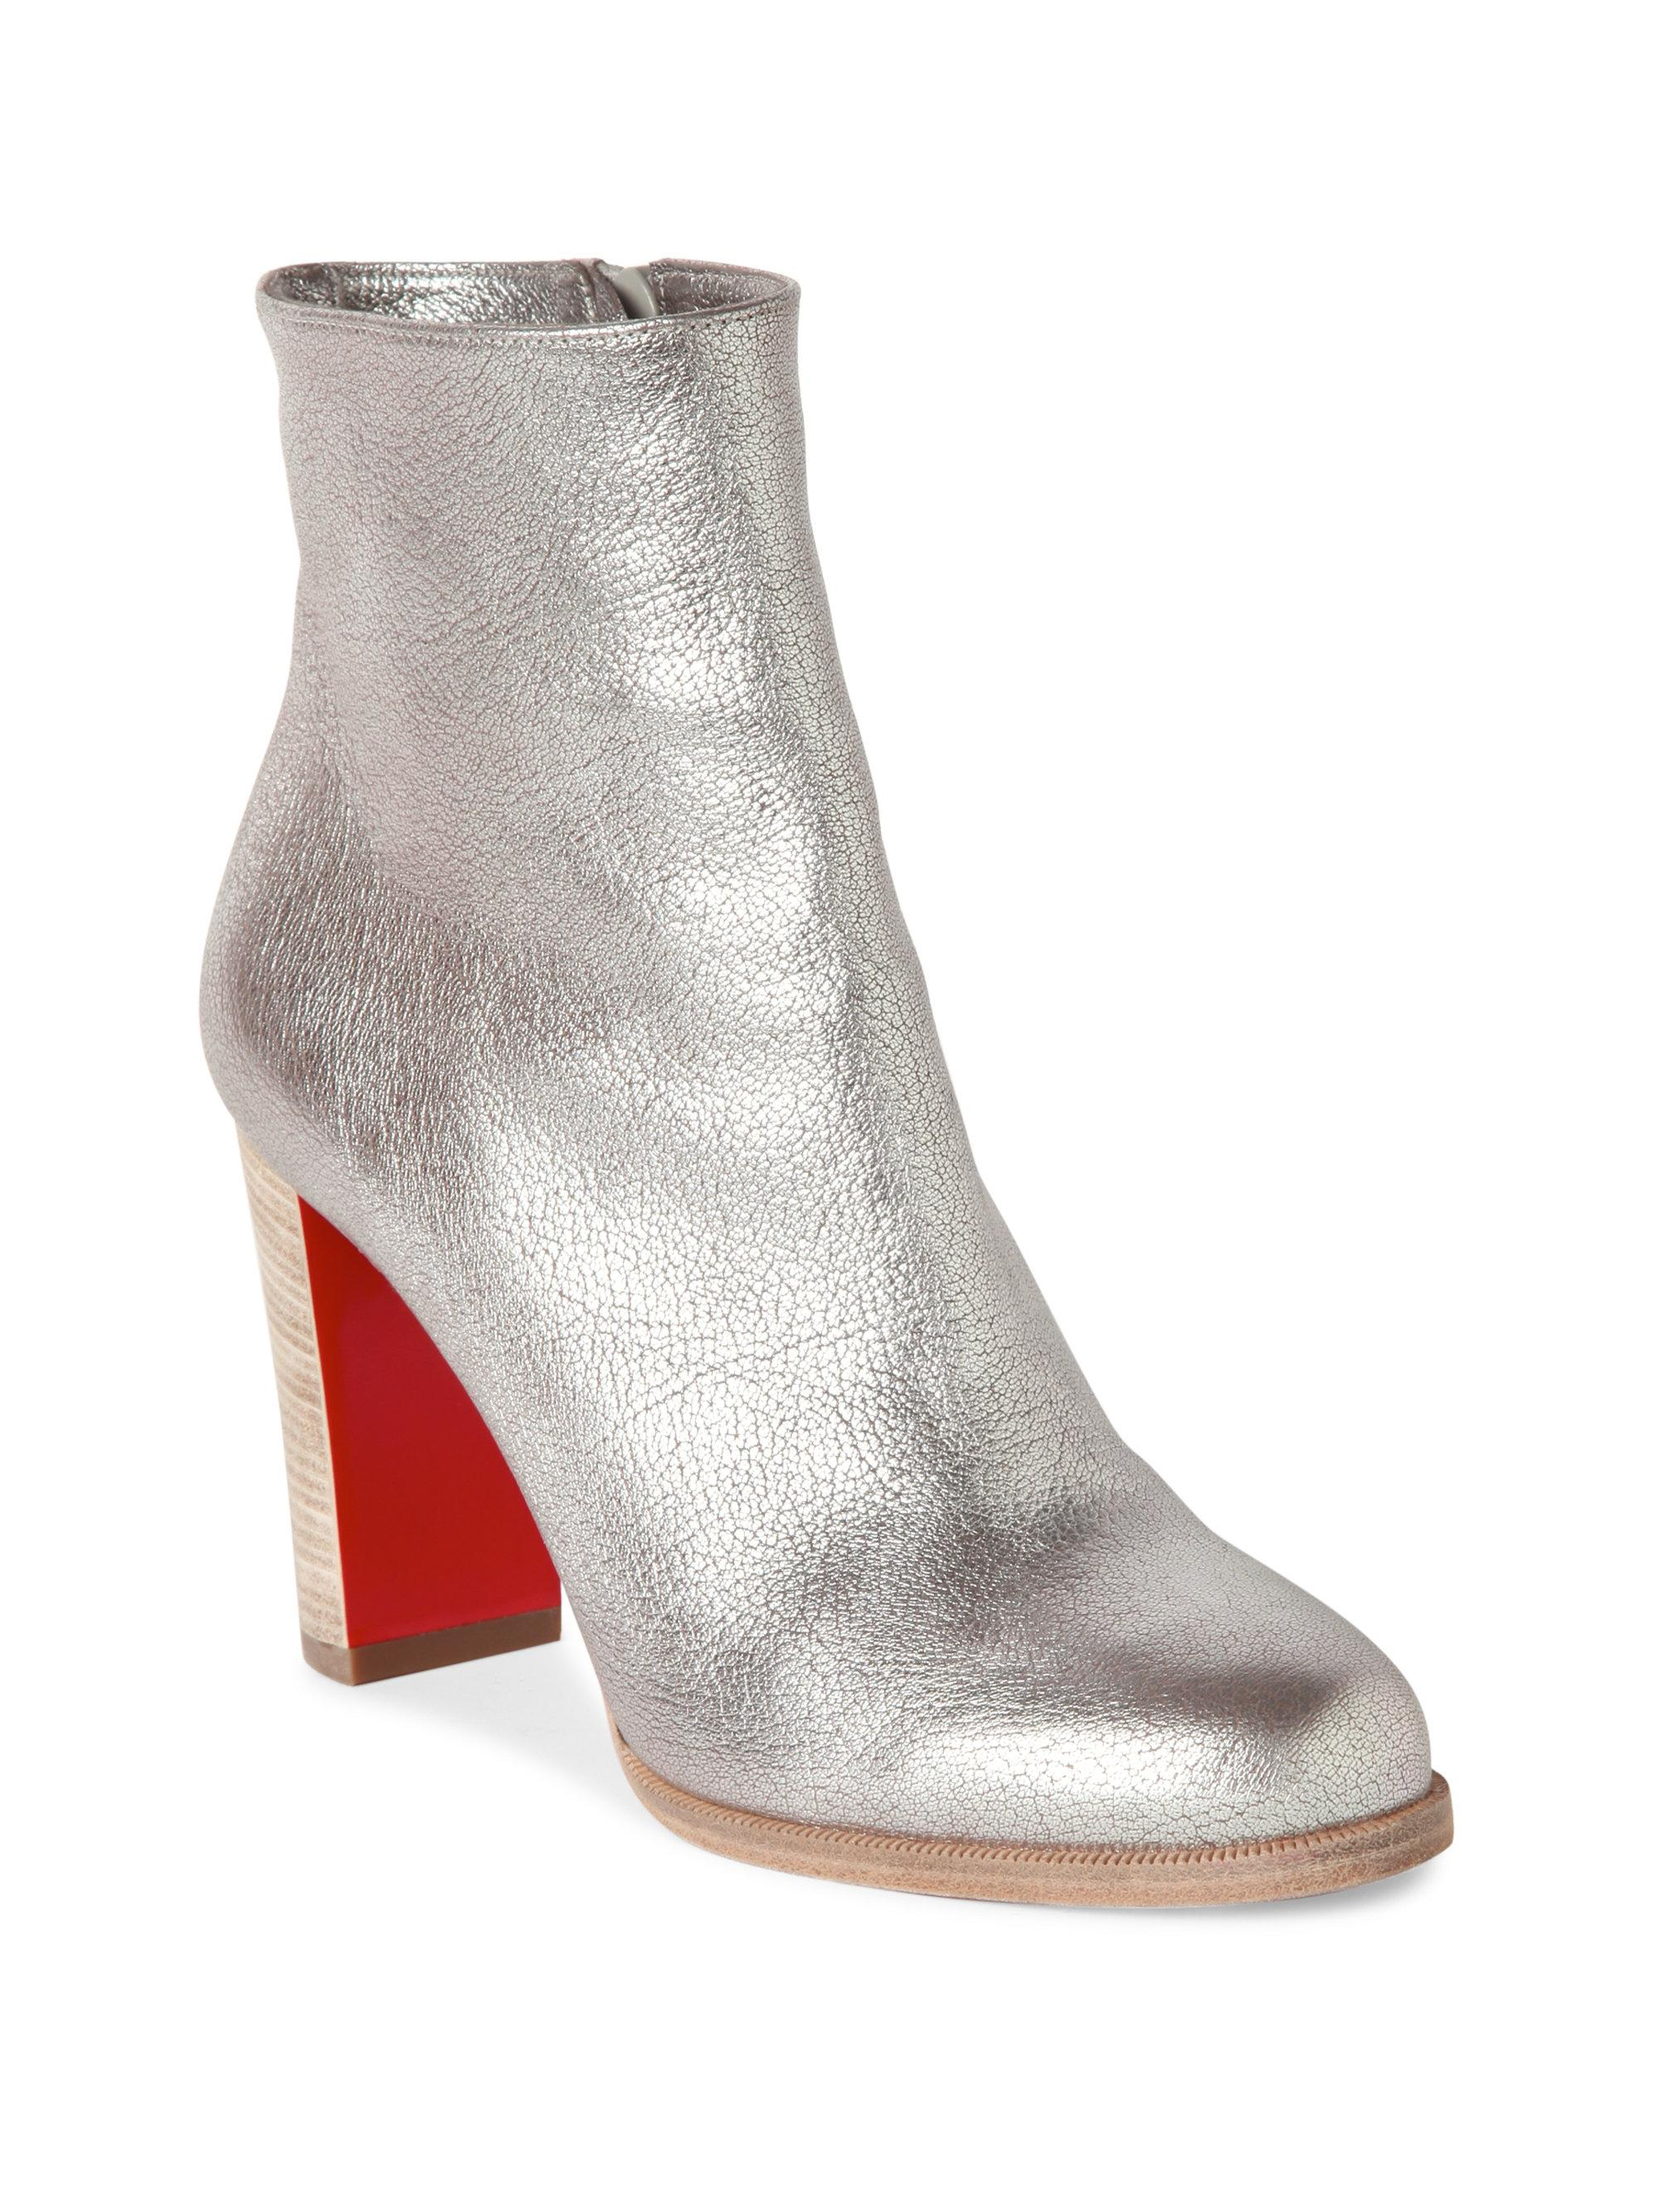 211a83e9c6d8 Lyst - Christian Louboutin Adox 85 Metallic Leather Booties